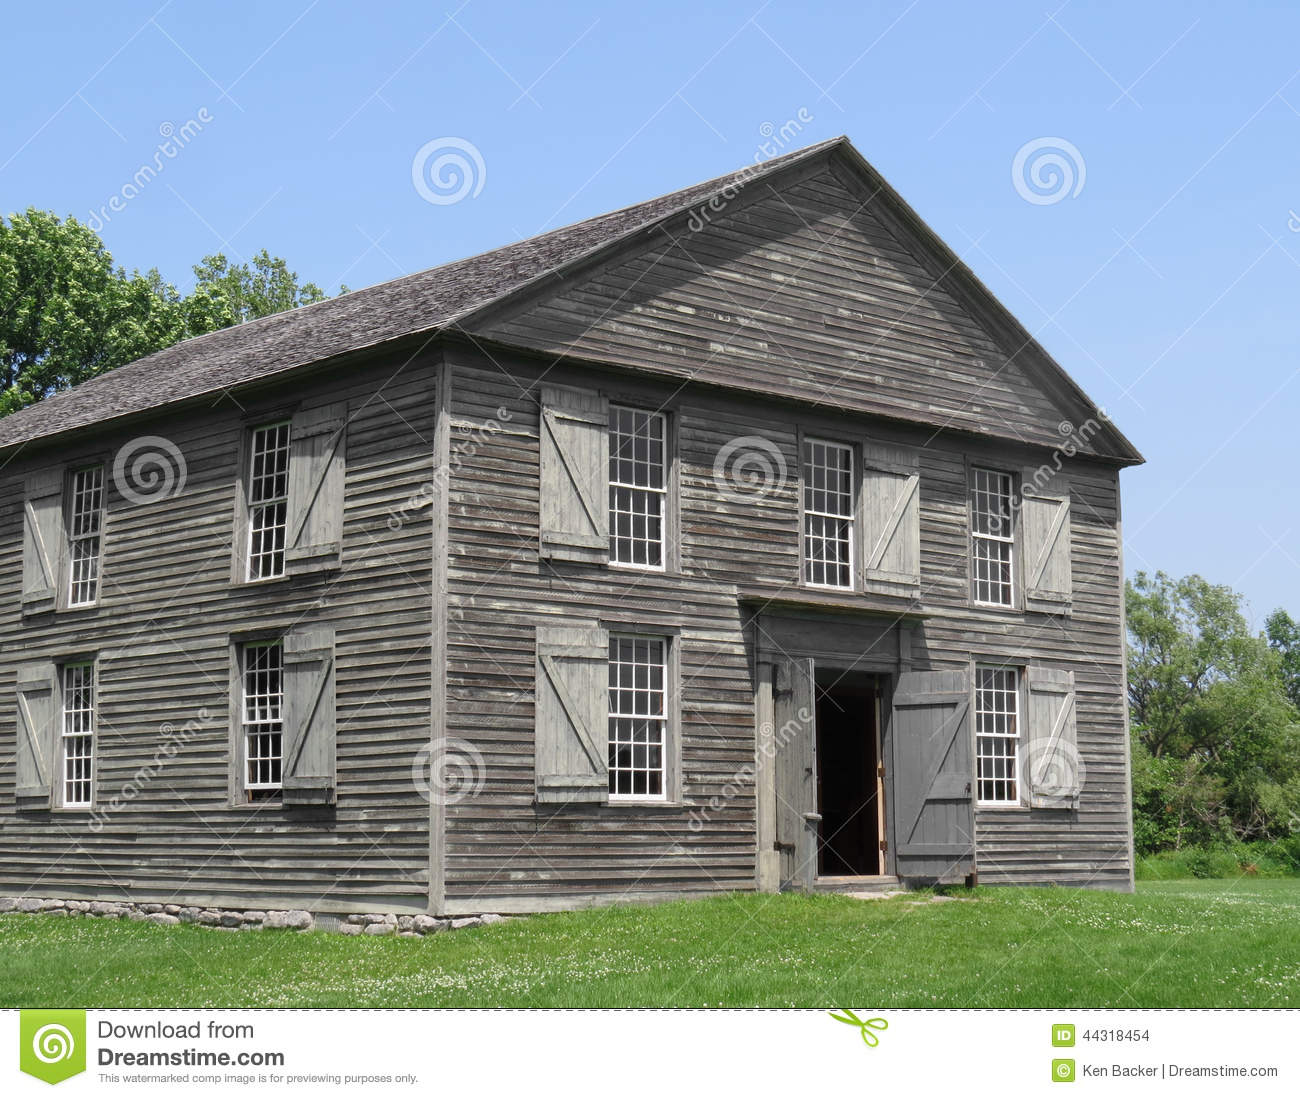 Old Wooden Two Story Building Stock Photo Image 44318454